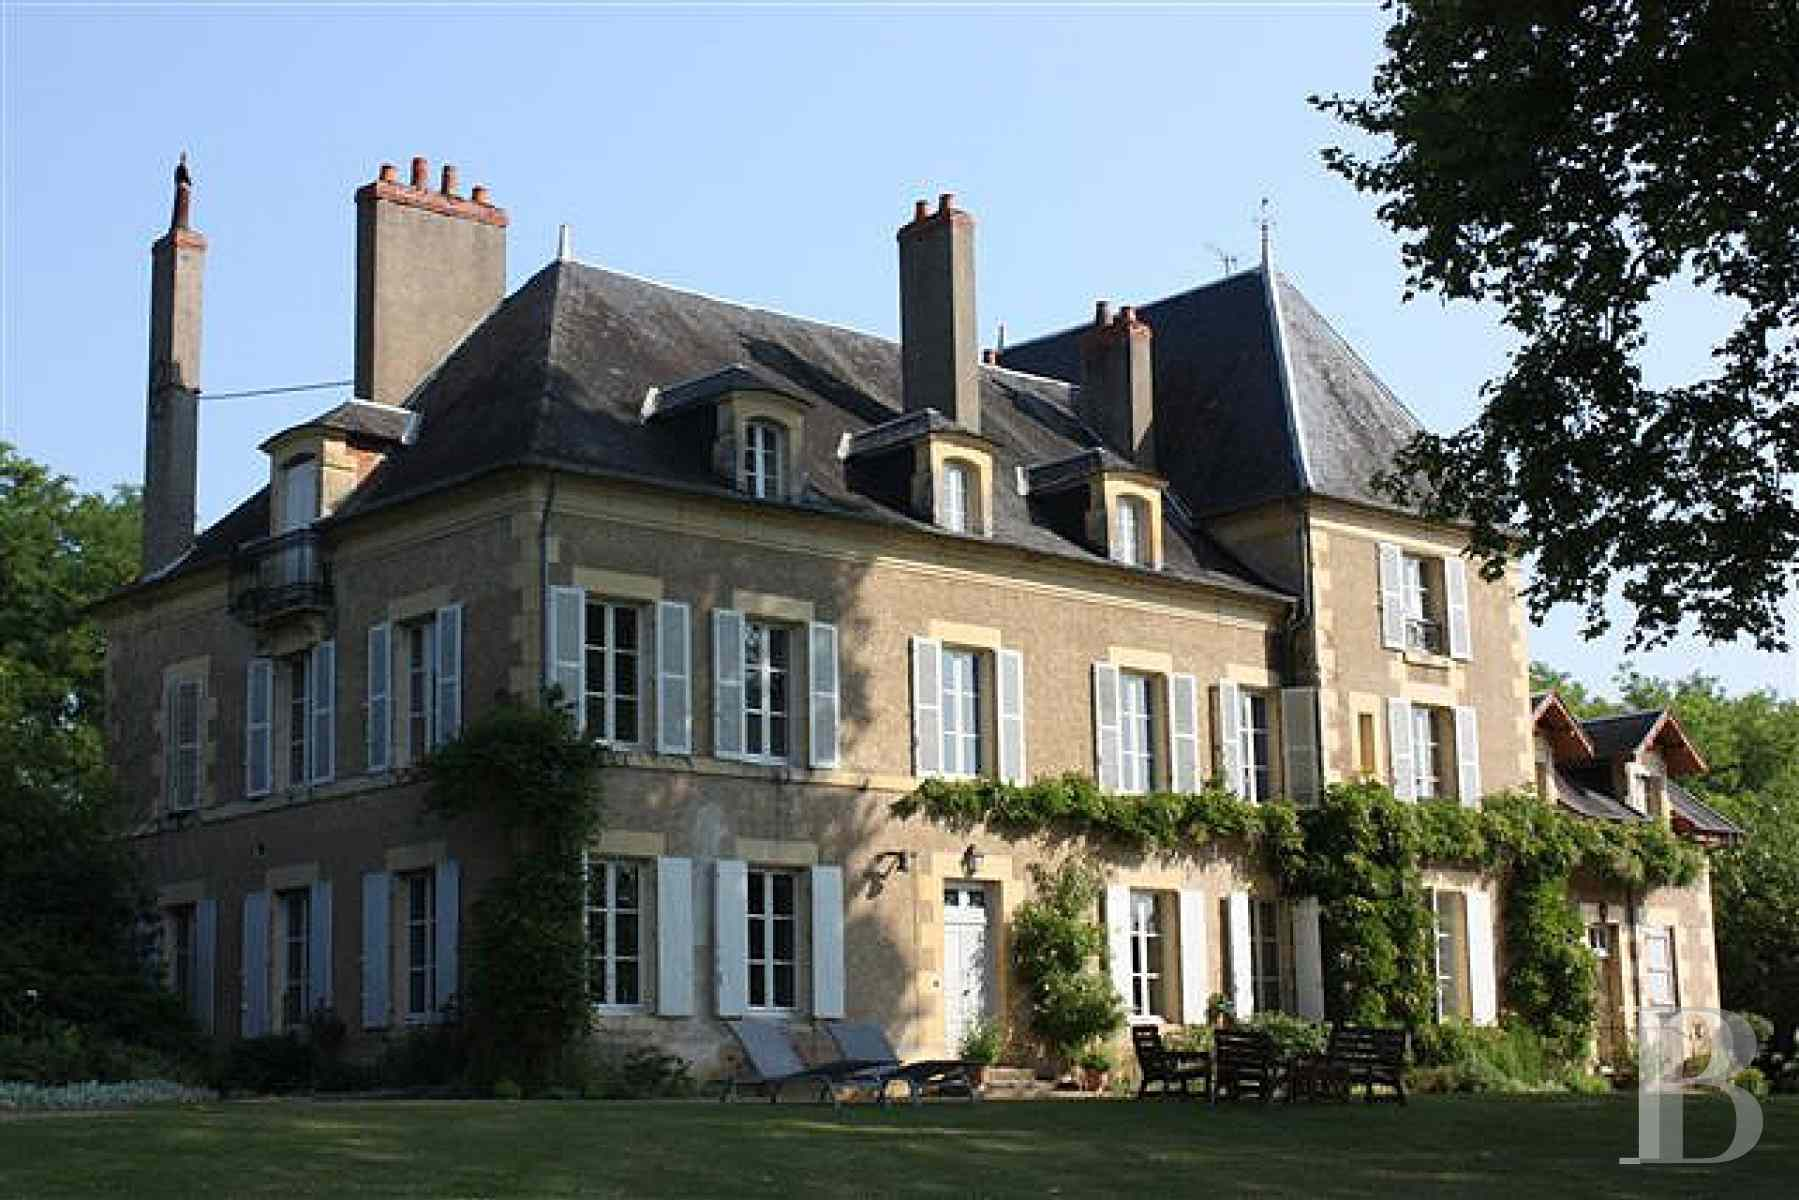 property for sale France burgundy near paris - 4 zoom